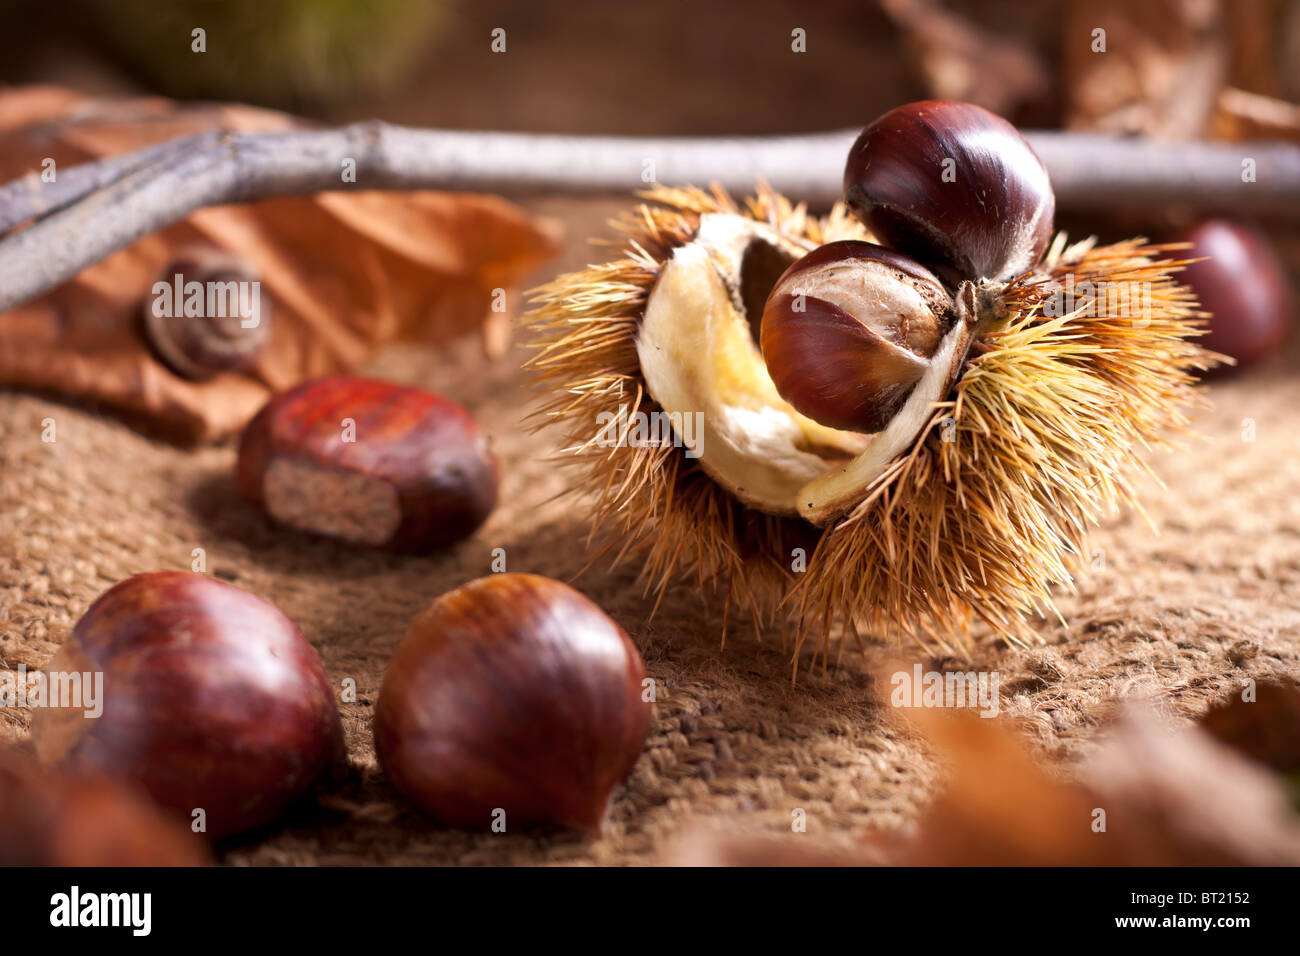 Chestnuts with Bur - Stock Image